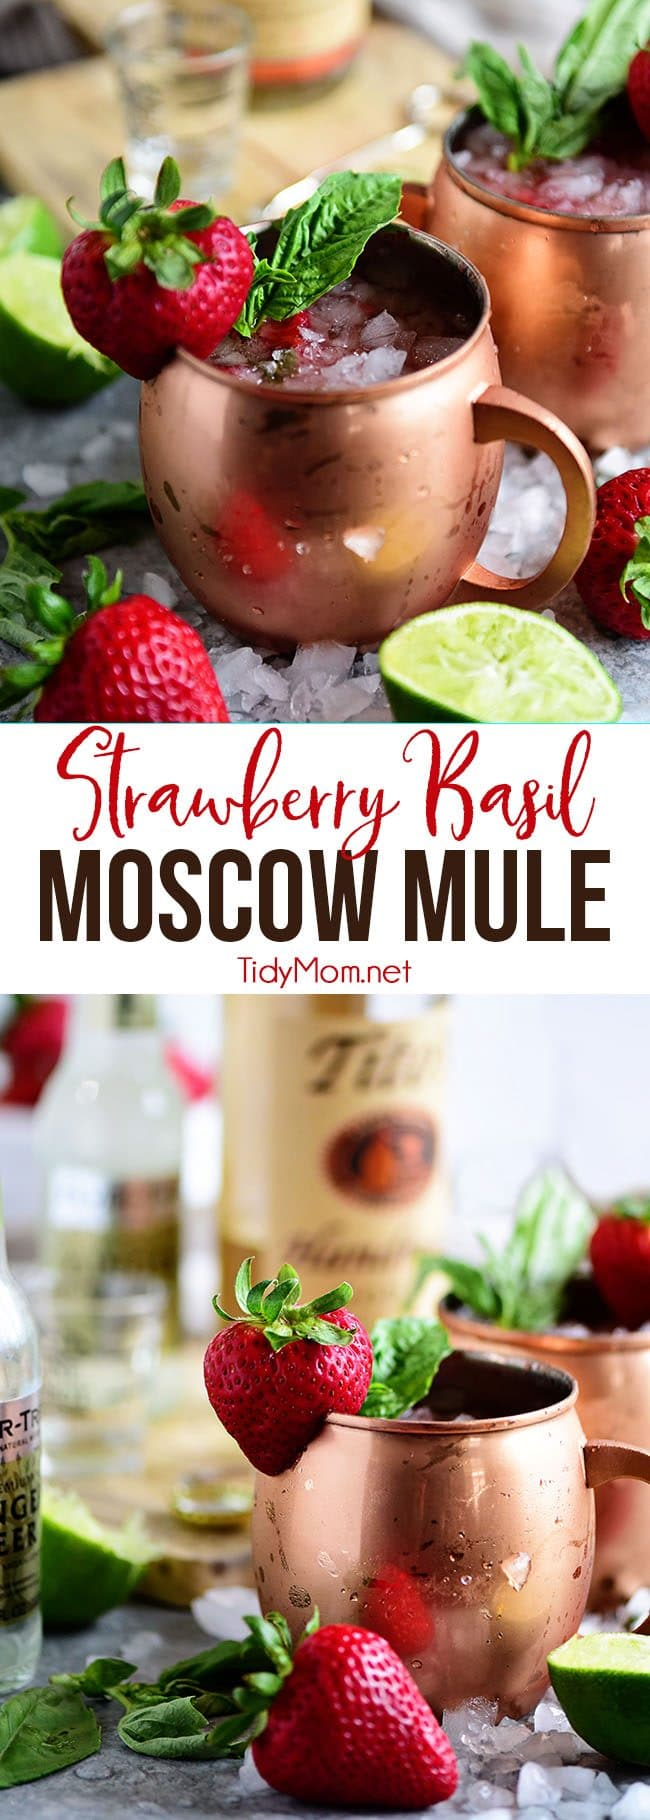 Strawberry Basil Moscow Mule is the perfect summer cocktail. Made like a traditional Moscow Mule with vodka, ginger beer and lime, with the addition of muddled fresh strawberries and basil. Print the recipe at TidyMom.net